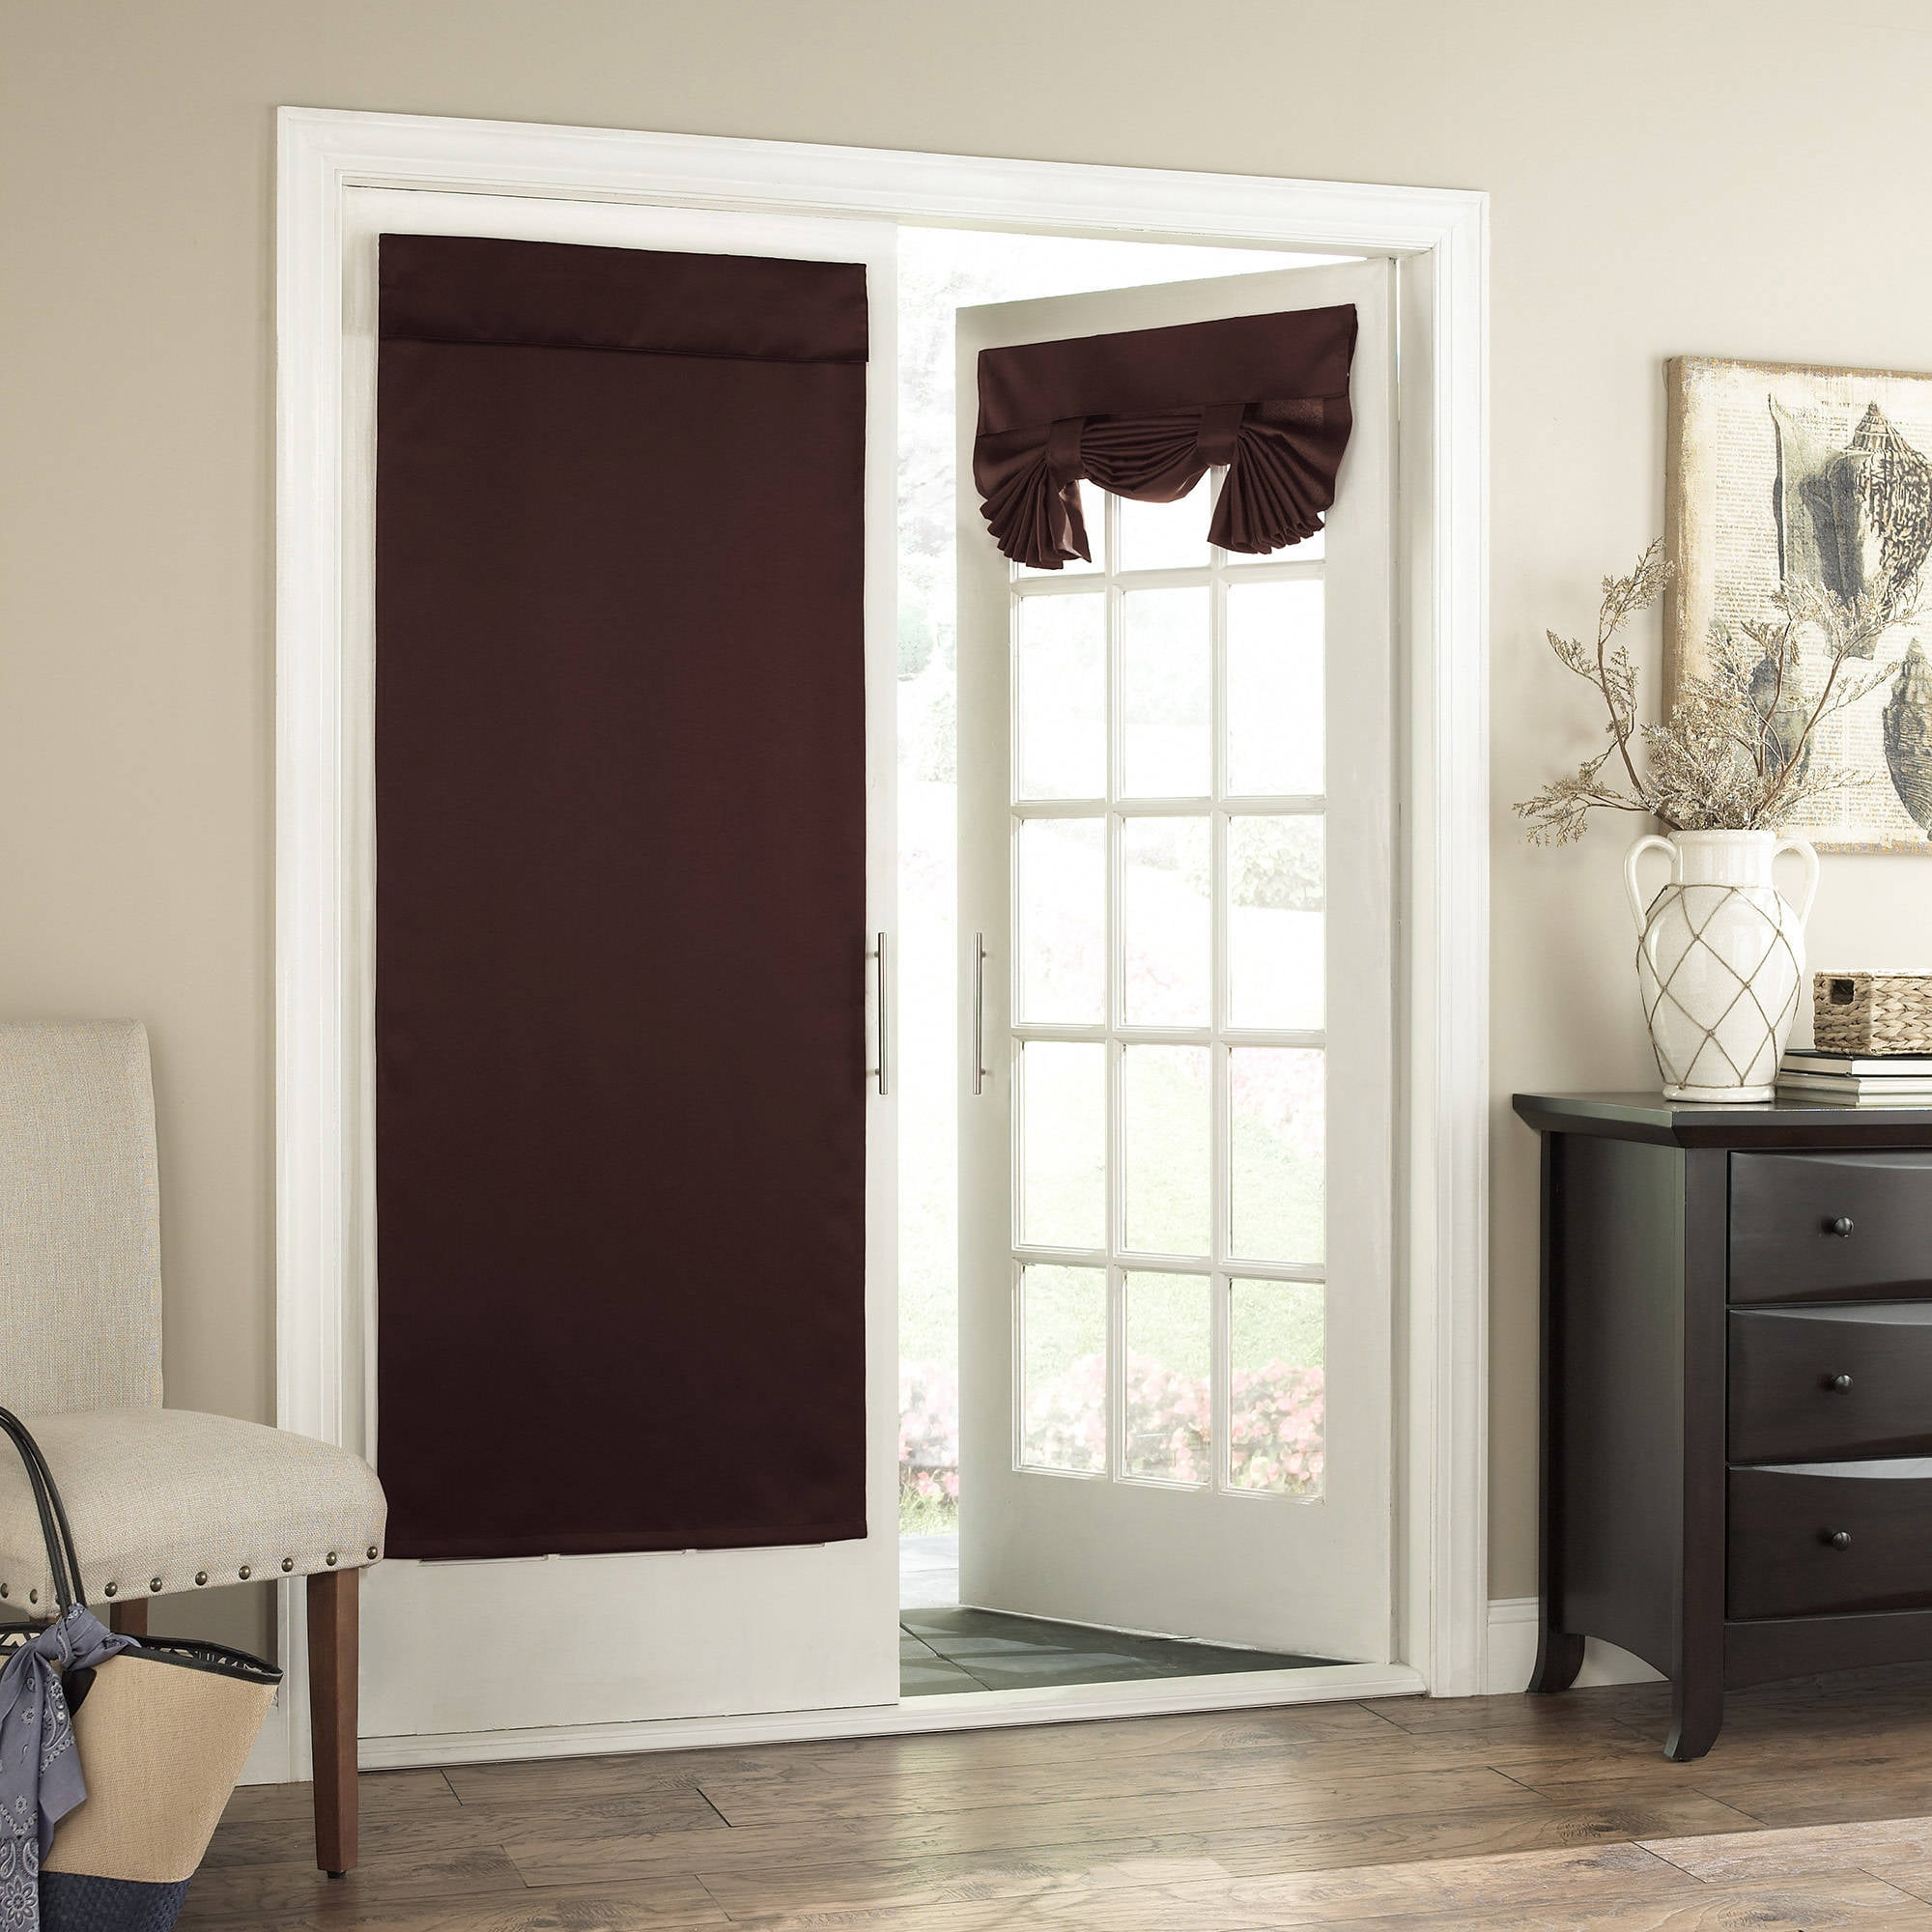 Superbe Tricia Door Panel   Walmart.com